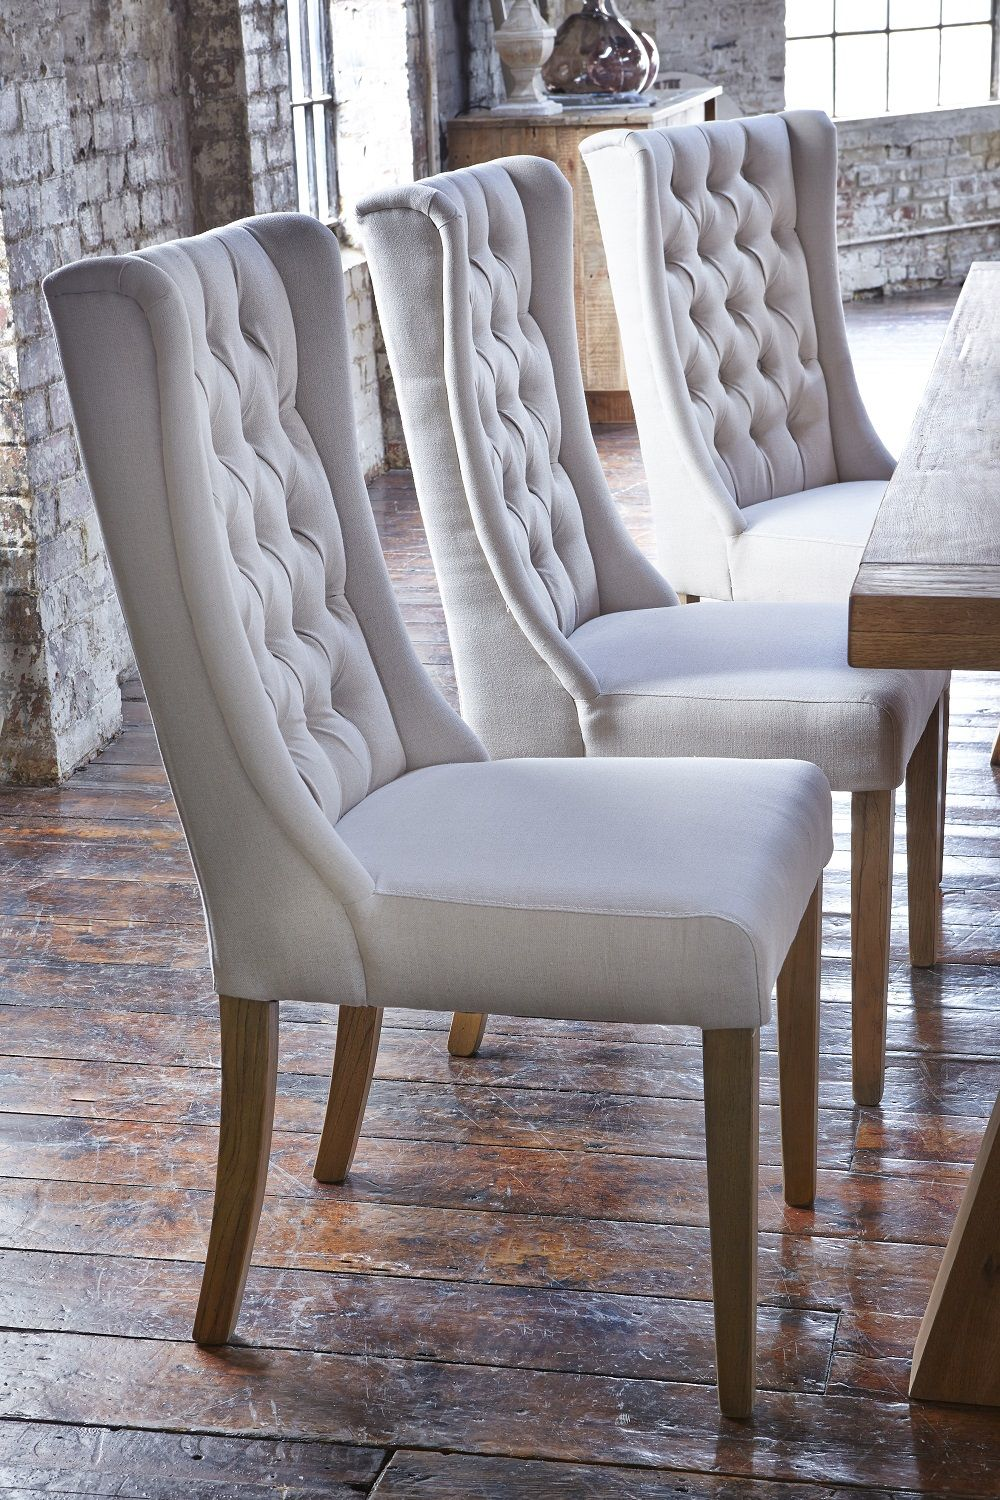 Upholstered, winged chairs will give your dining room an air of ...